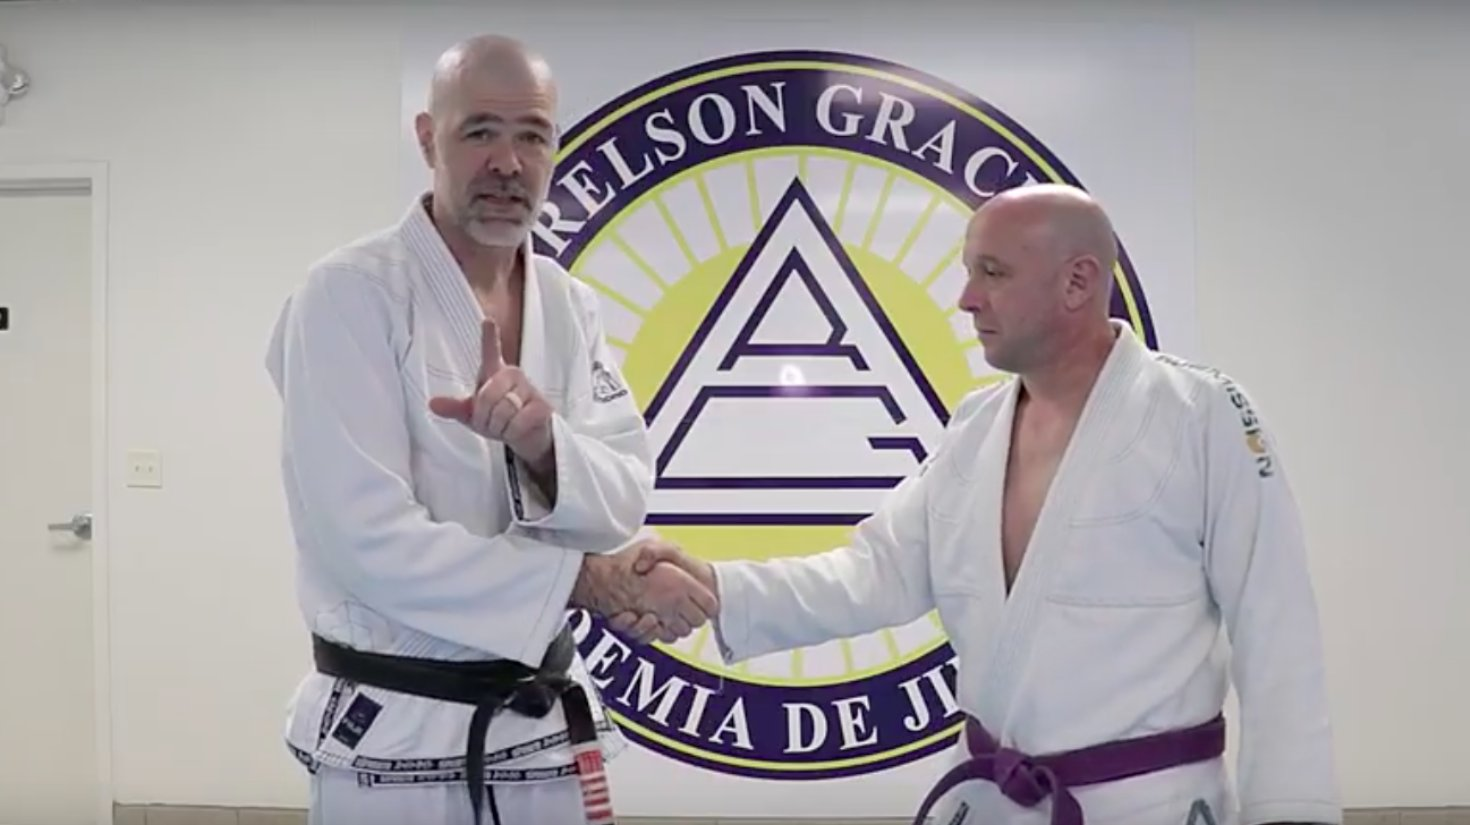 This jiu-jitsu academy made a video about how to defeat the Trump handshake: https://t.co/BZ7JLtMjtE https://t.co/2tjzXiWoan